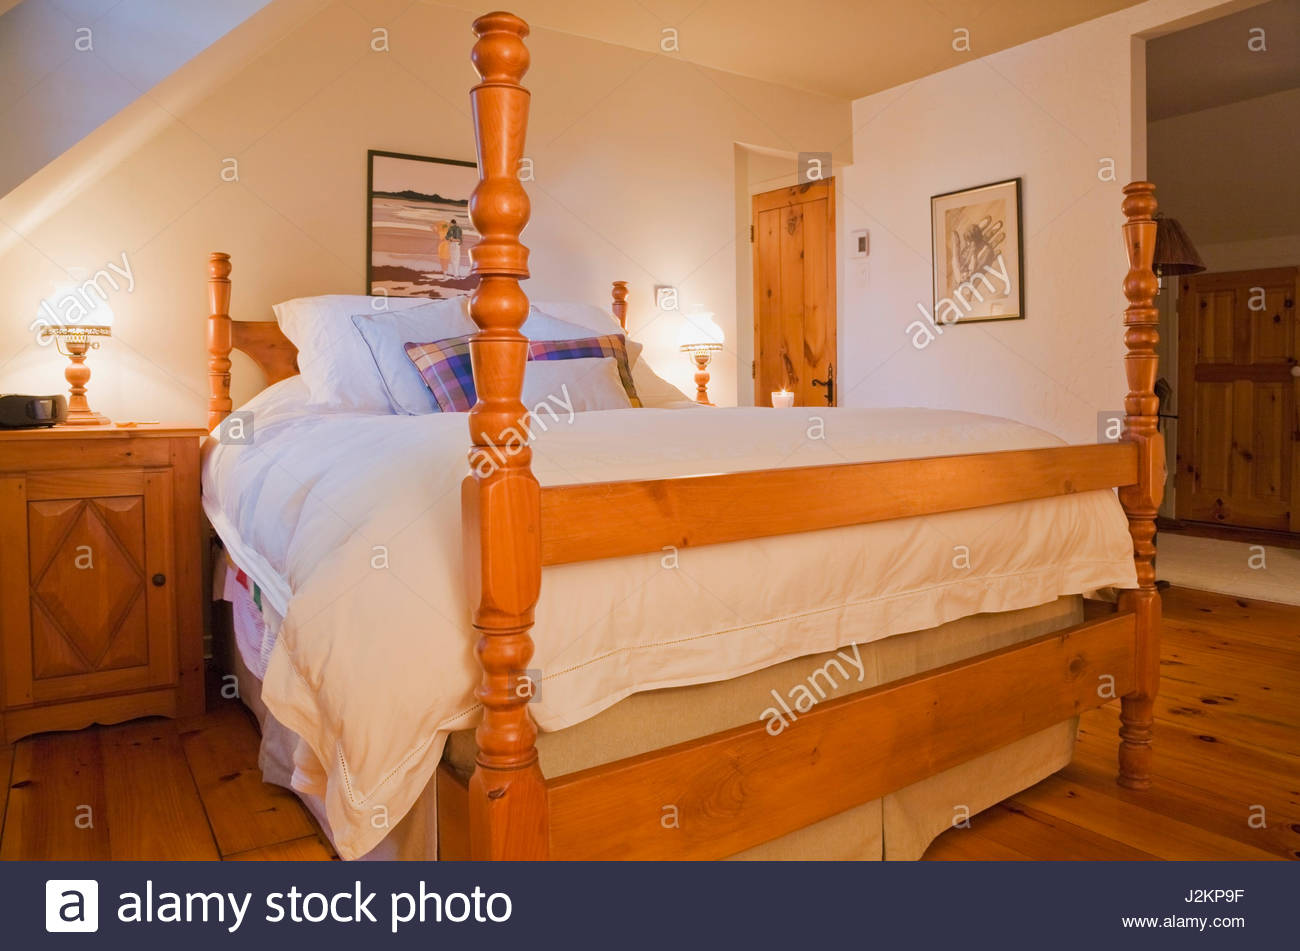 Queen size bed on wooden frame with tall bedposts in master bedroom on the  upstairs floor inside a Canadiana cottage style log home.